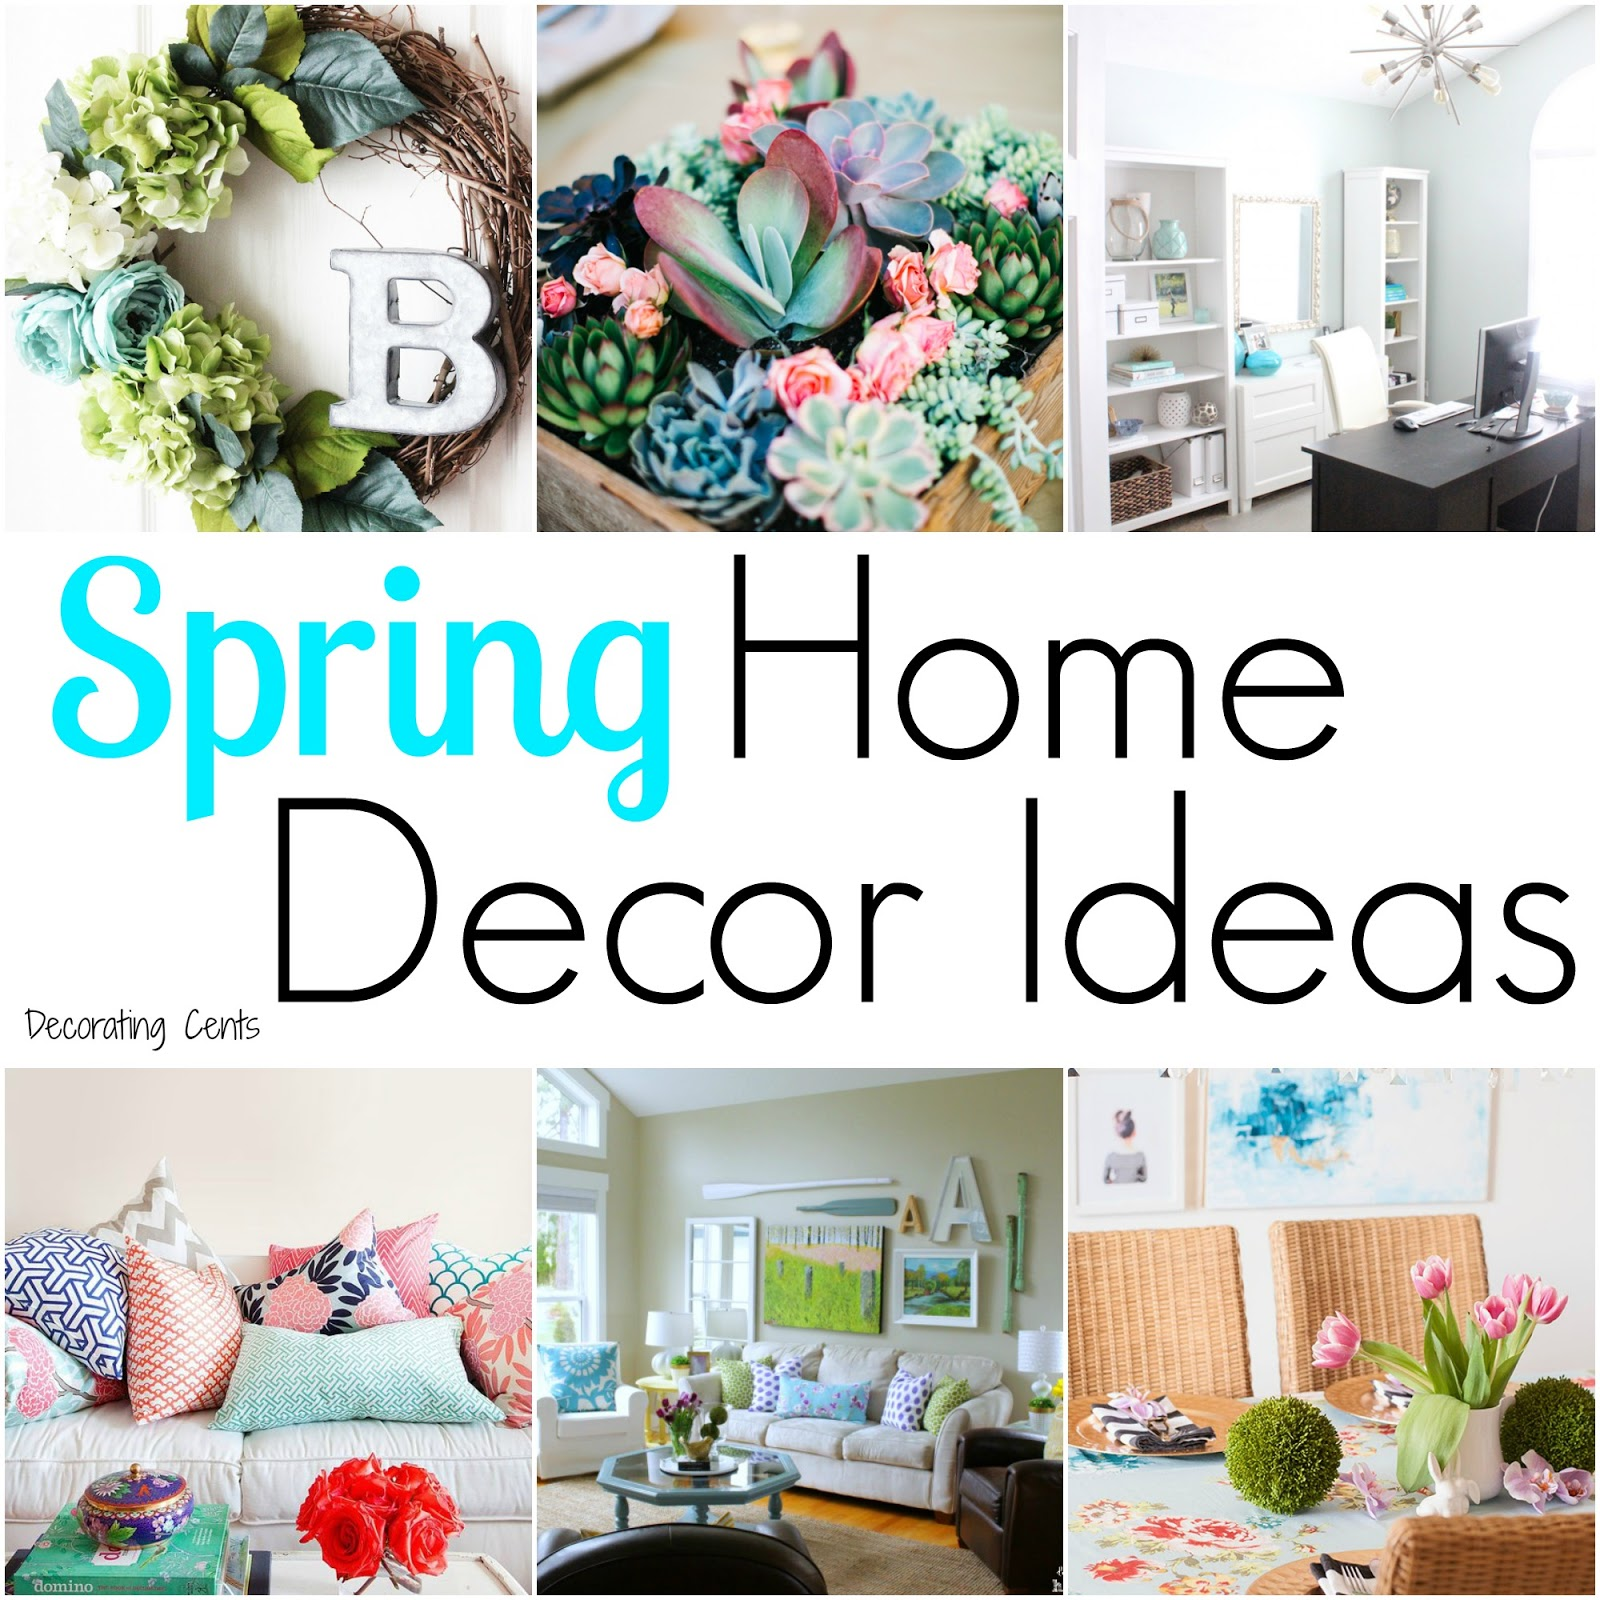 Decorating cents spring home decor ideas for Home decor design ideas